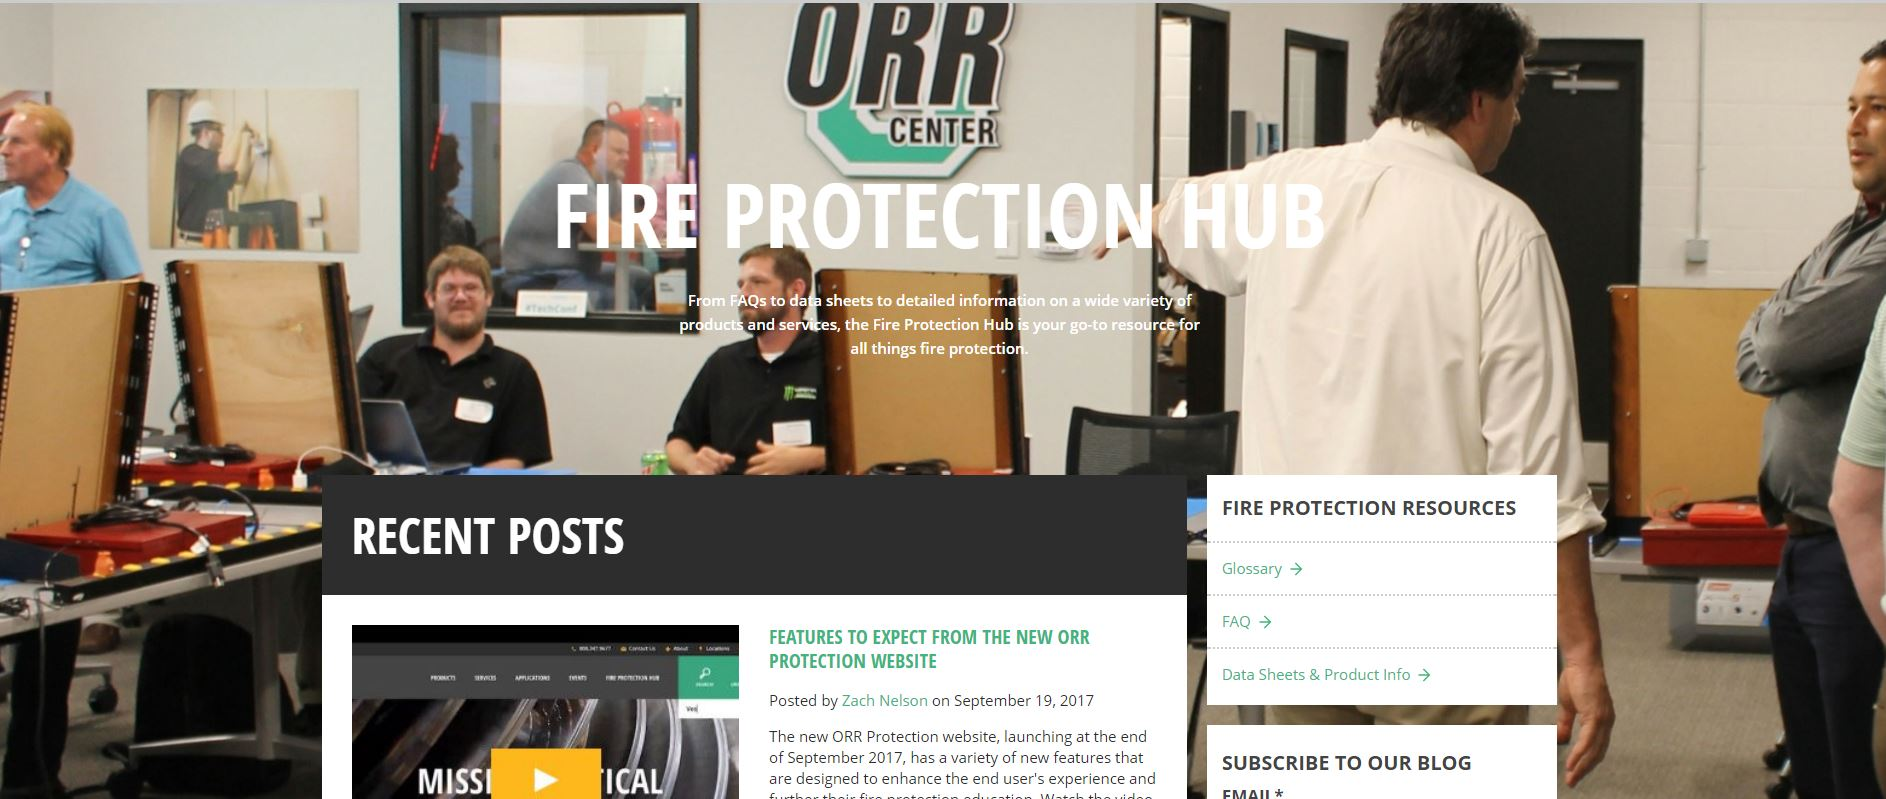 ORR Fire Protection Hub